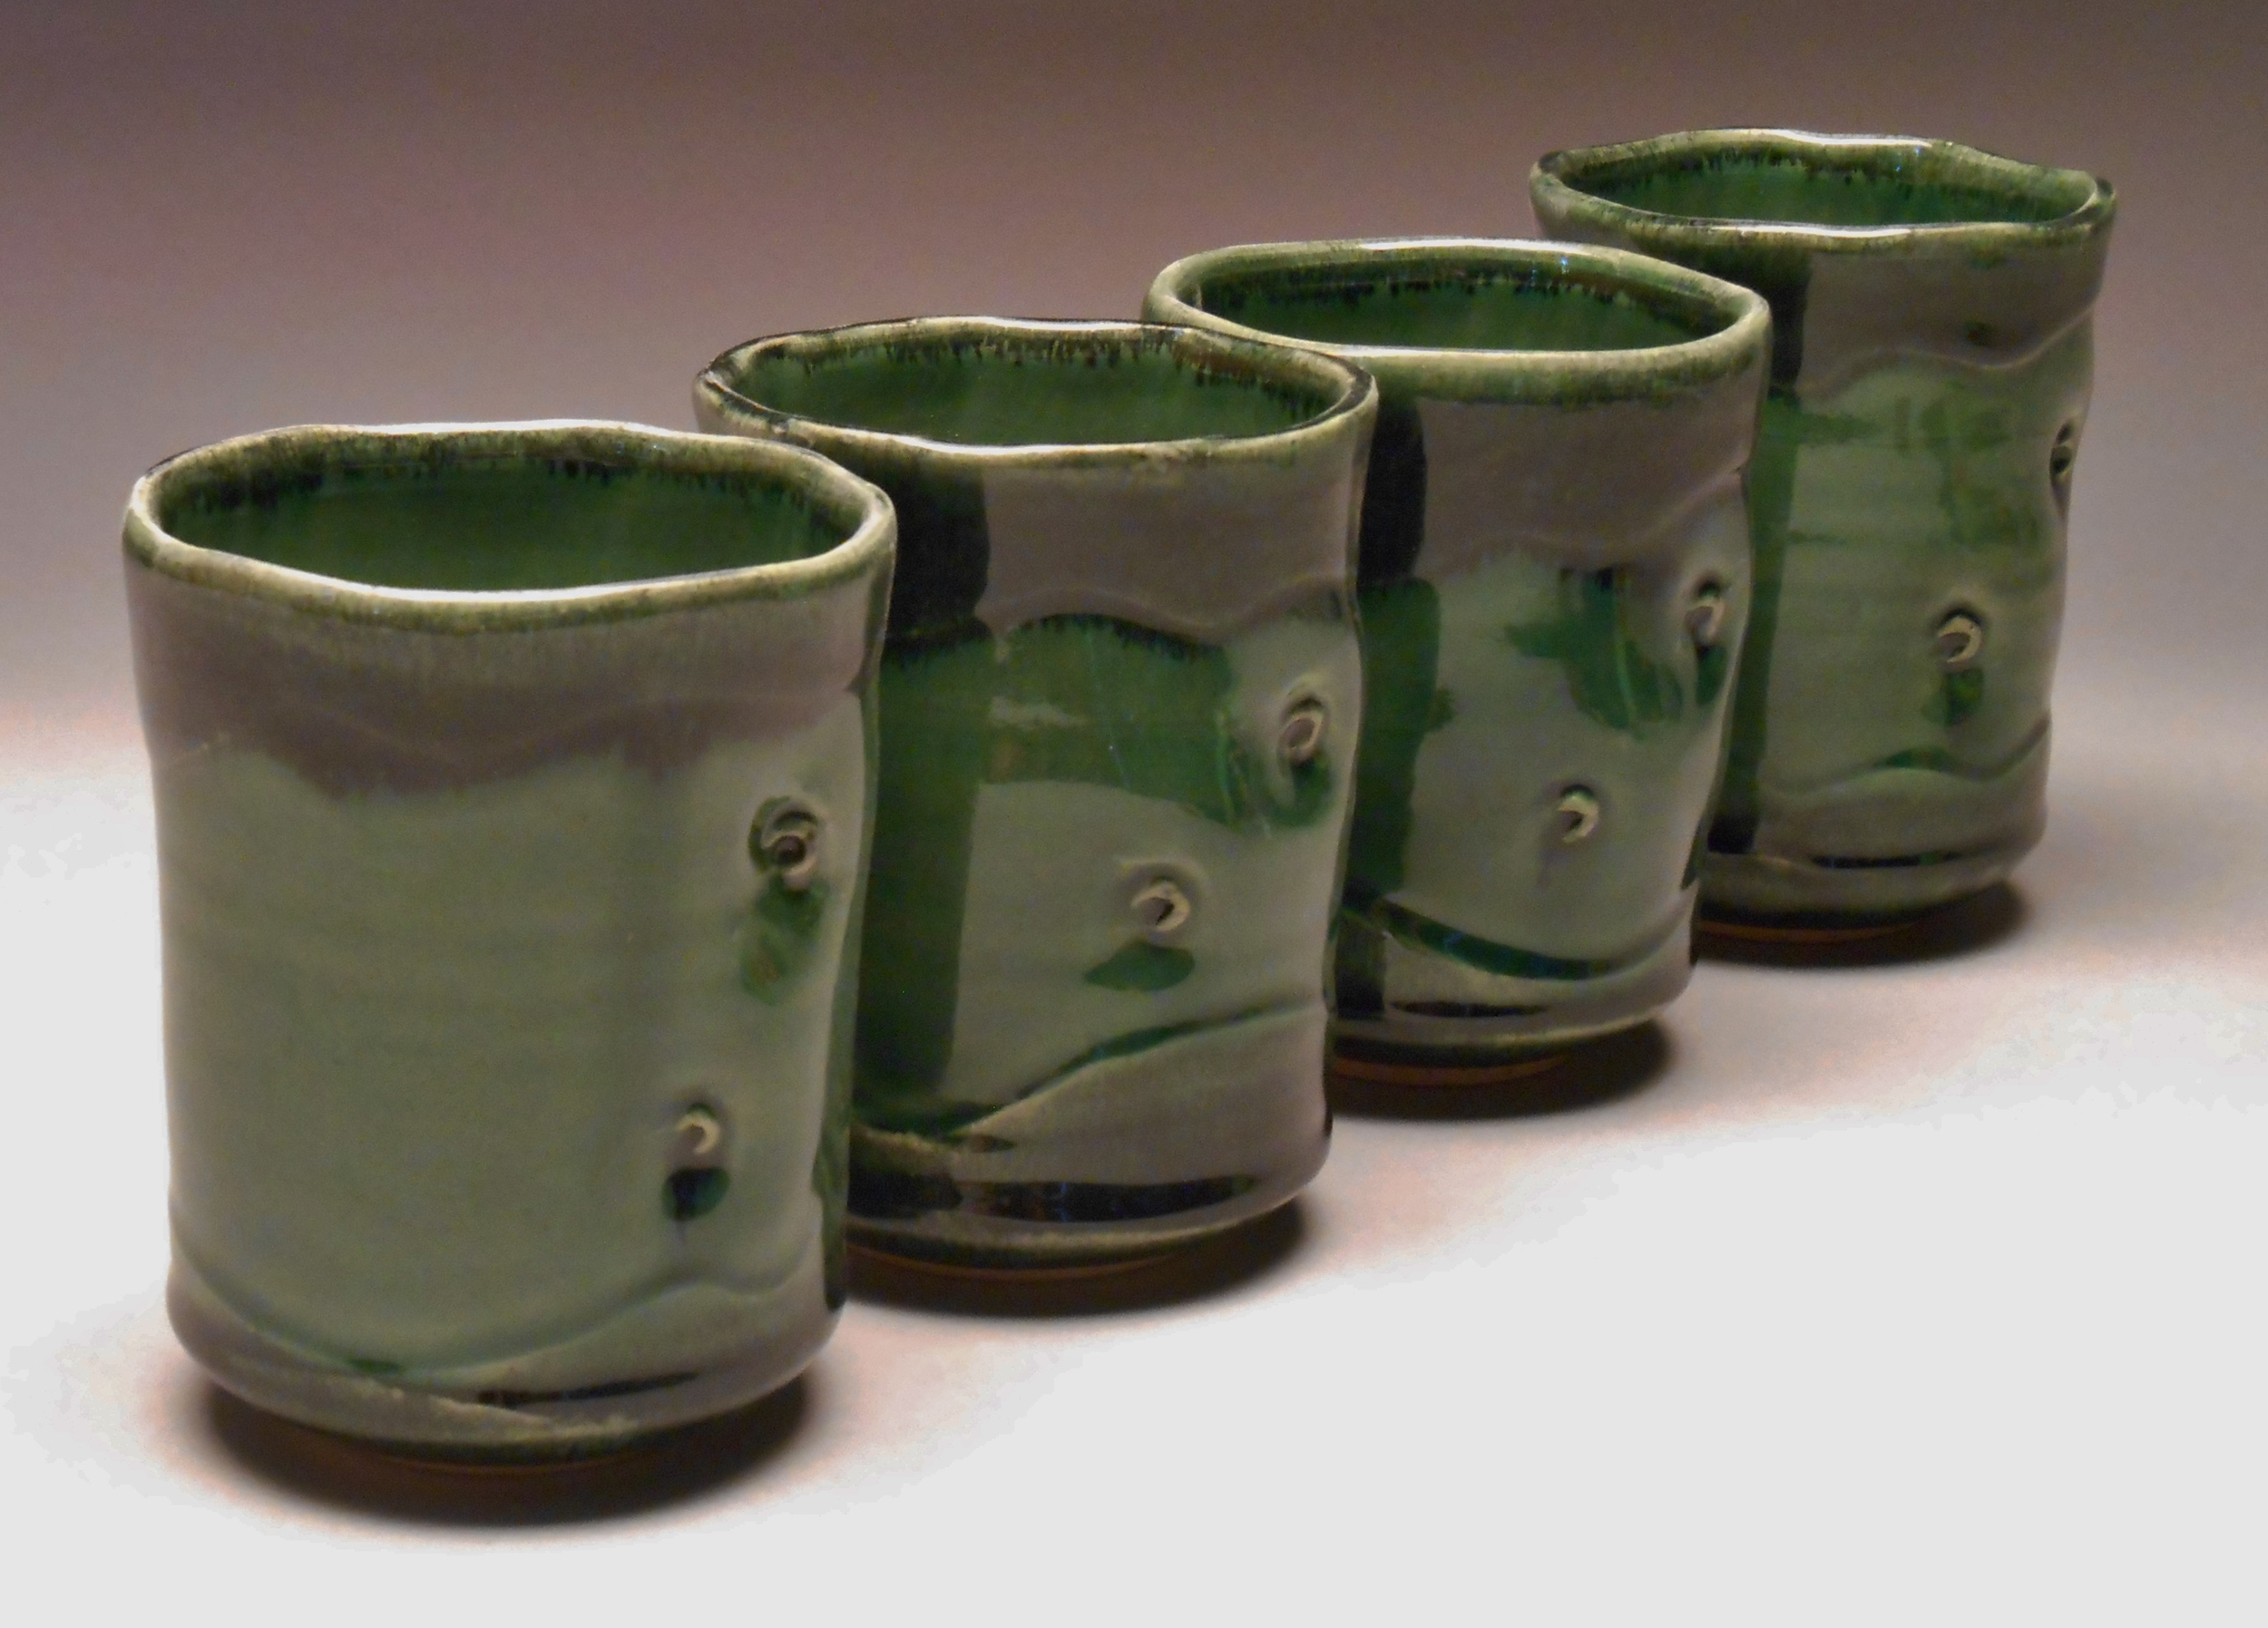 #198-201, Tumblers, 4.5x3.25, Available at Wild Hands in Jackson, WY